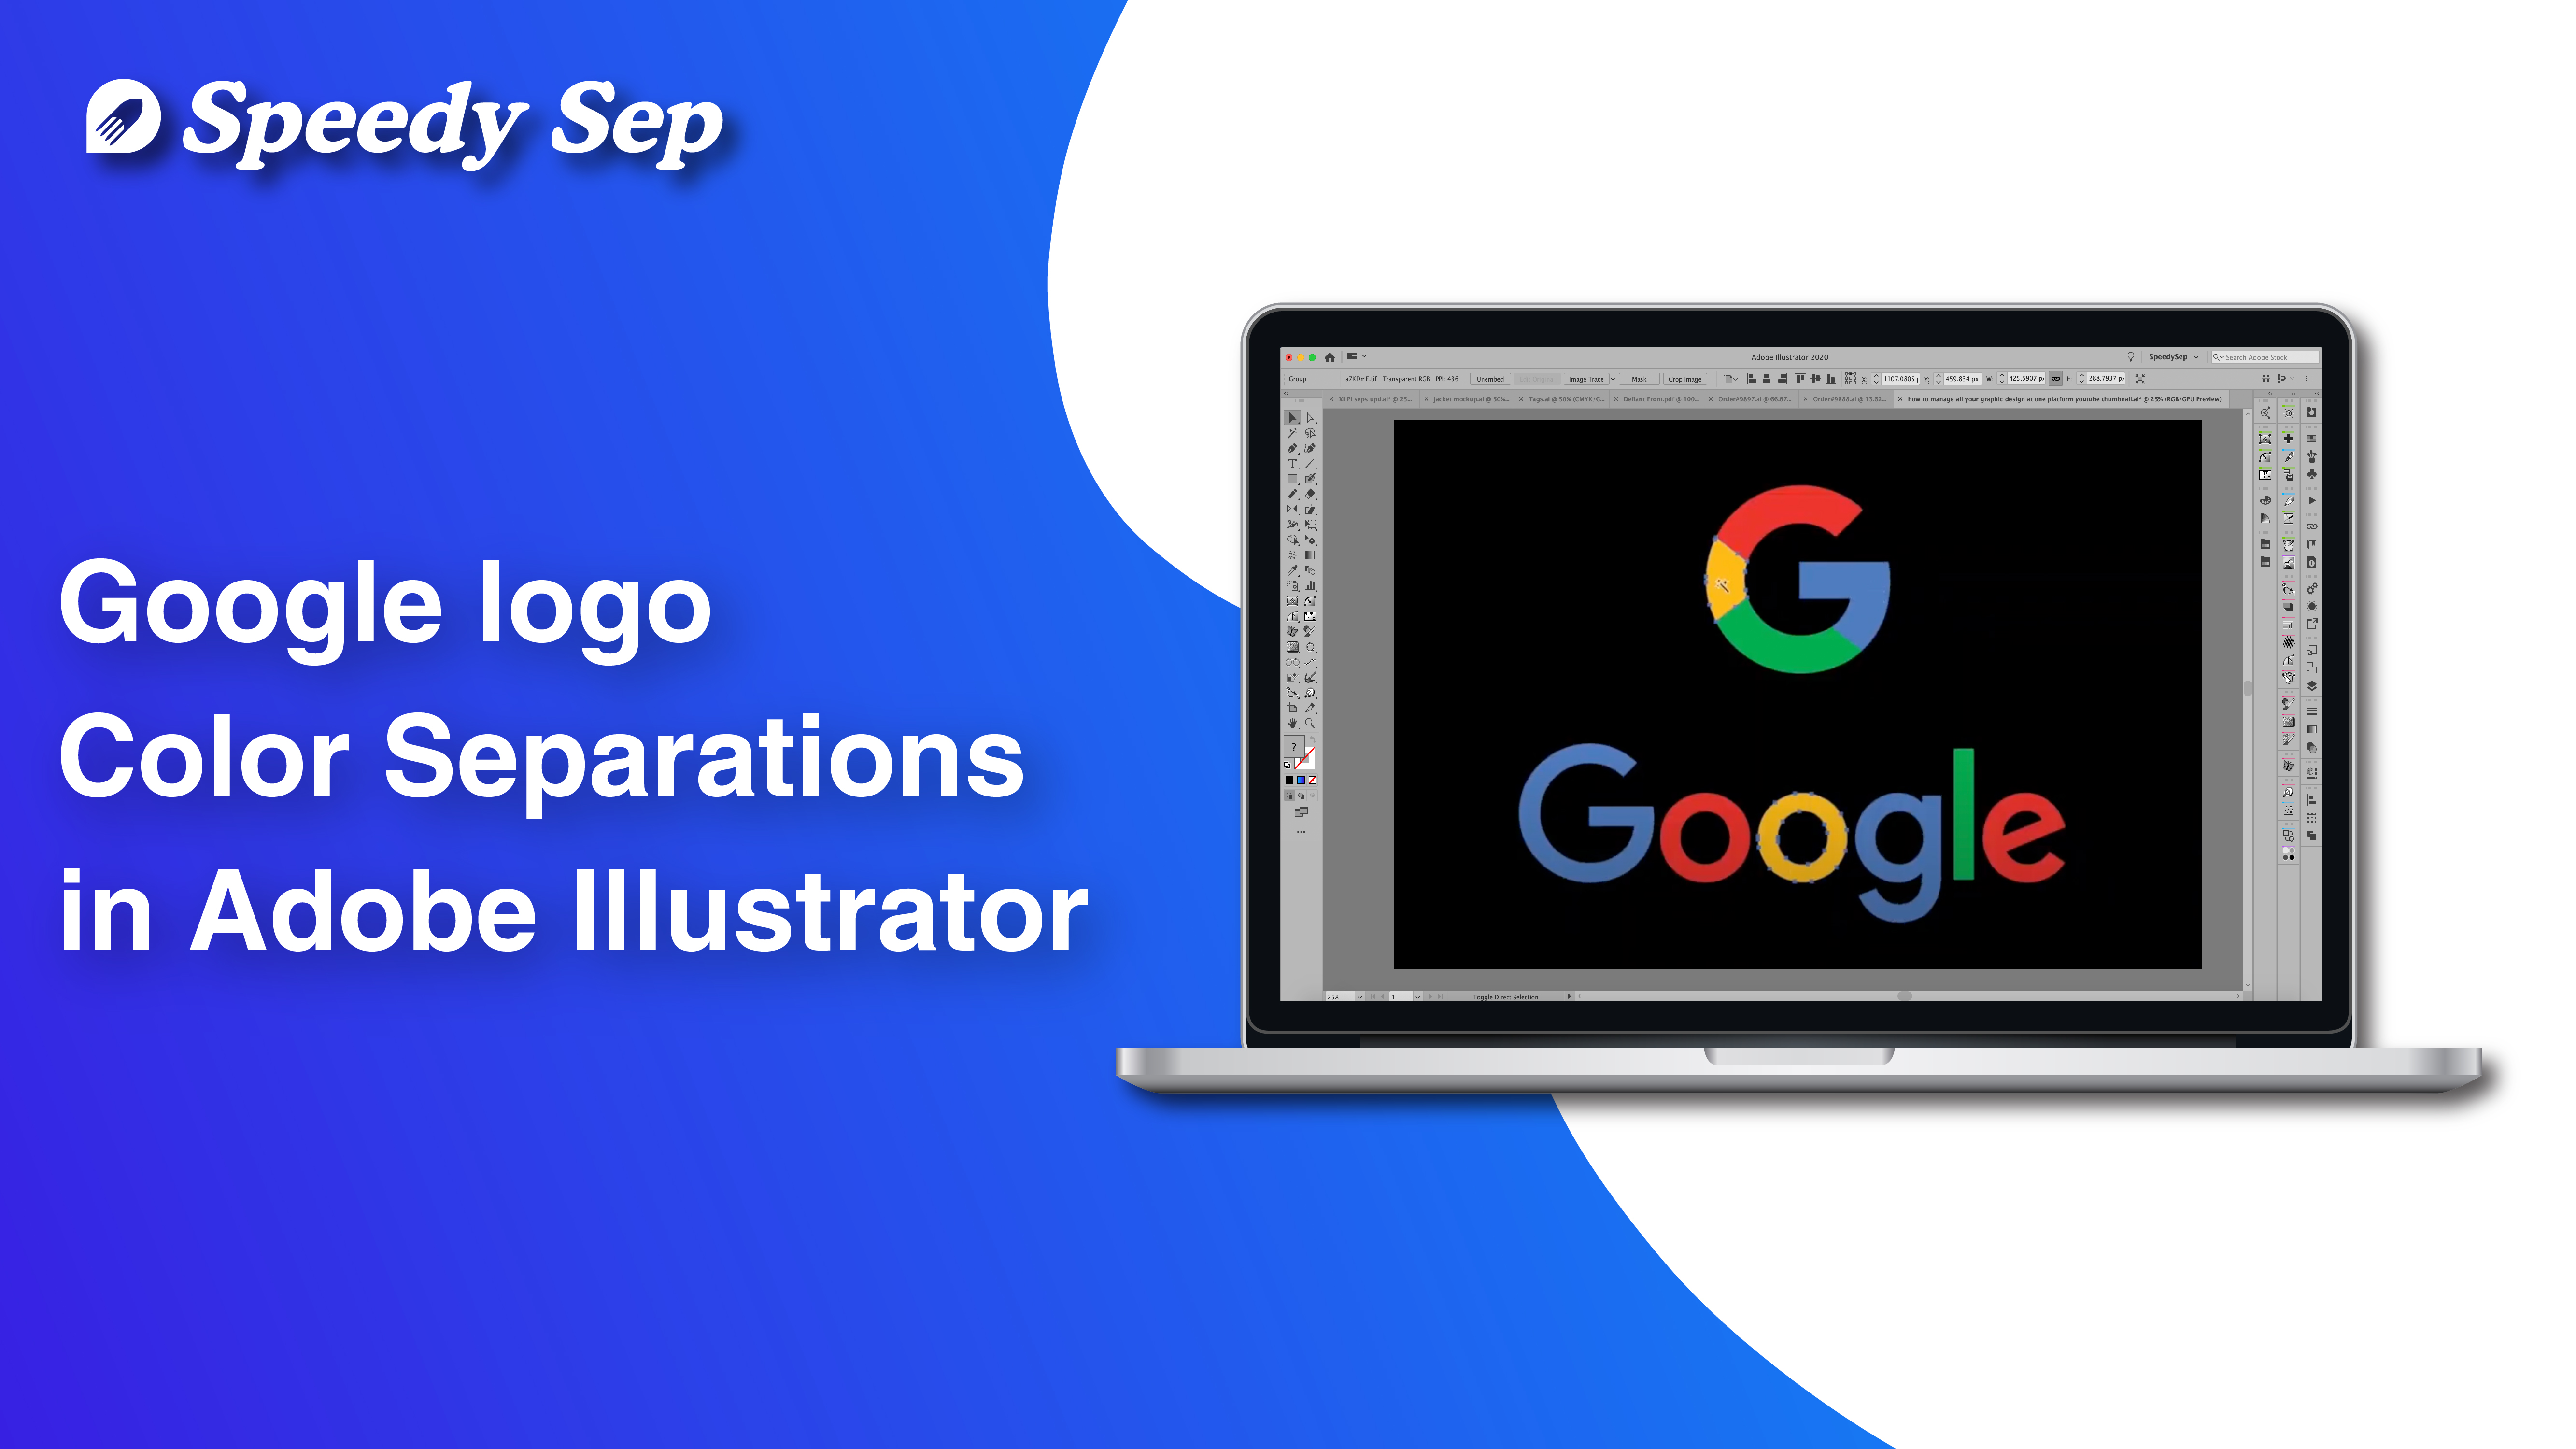 Google logo in Color Separations in Adobe Illustrator | Step by Step Tutorial by Speedysep.com